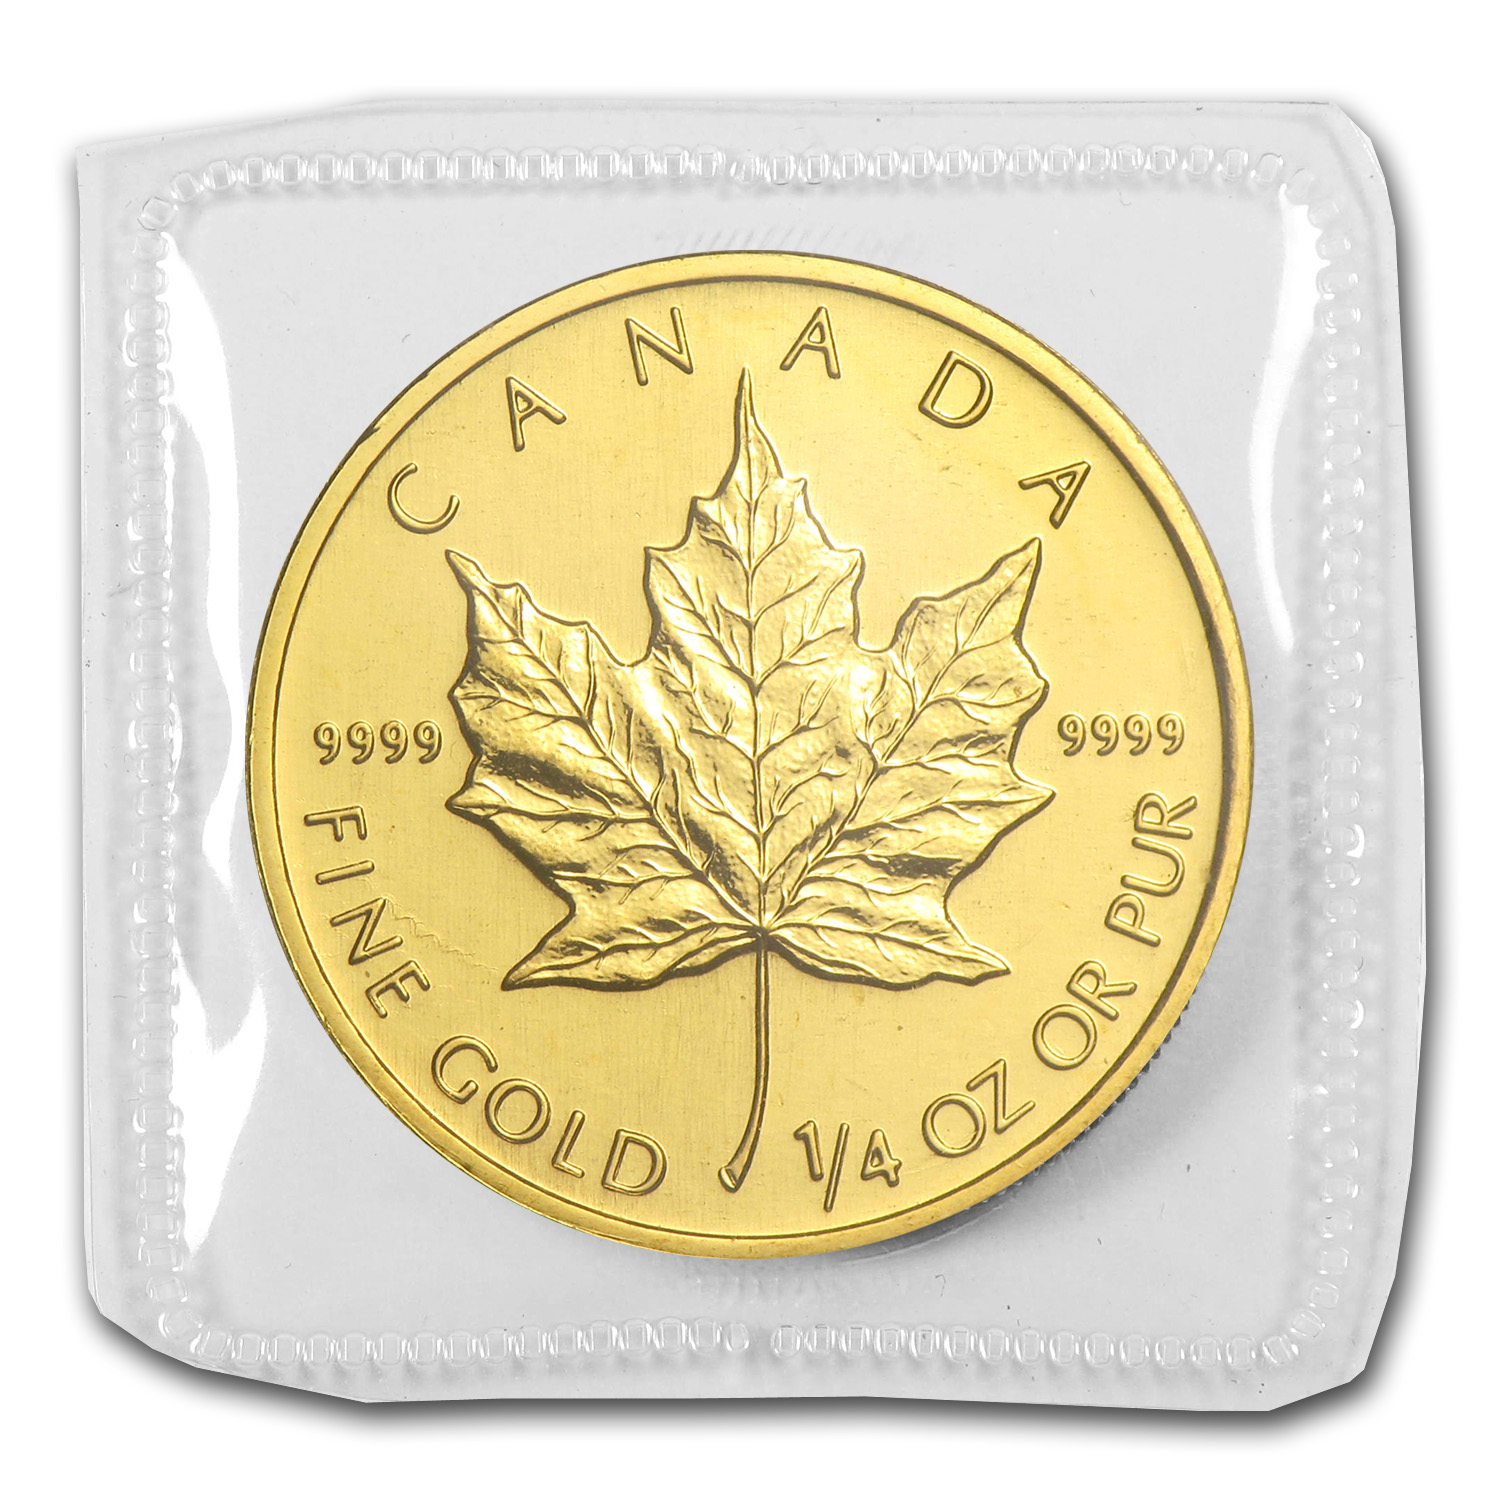 2001 1/4 oz Gold Canadian Maple Leaf